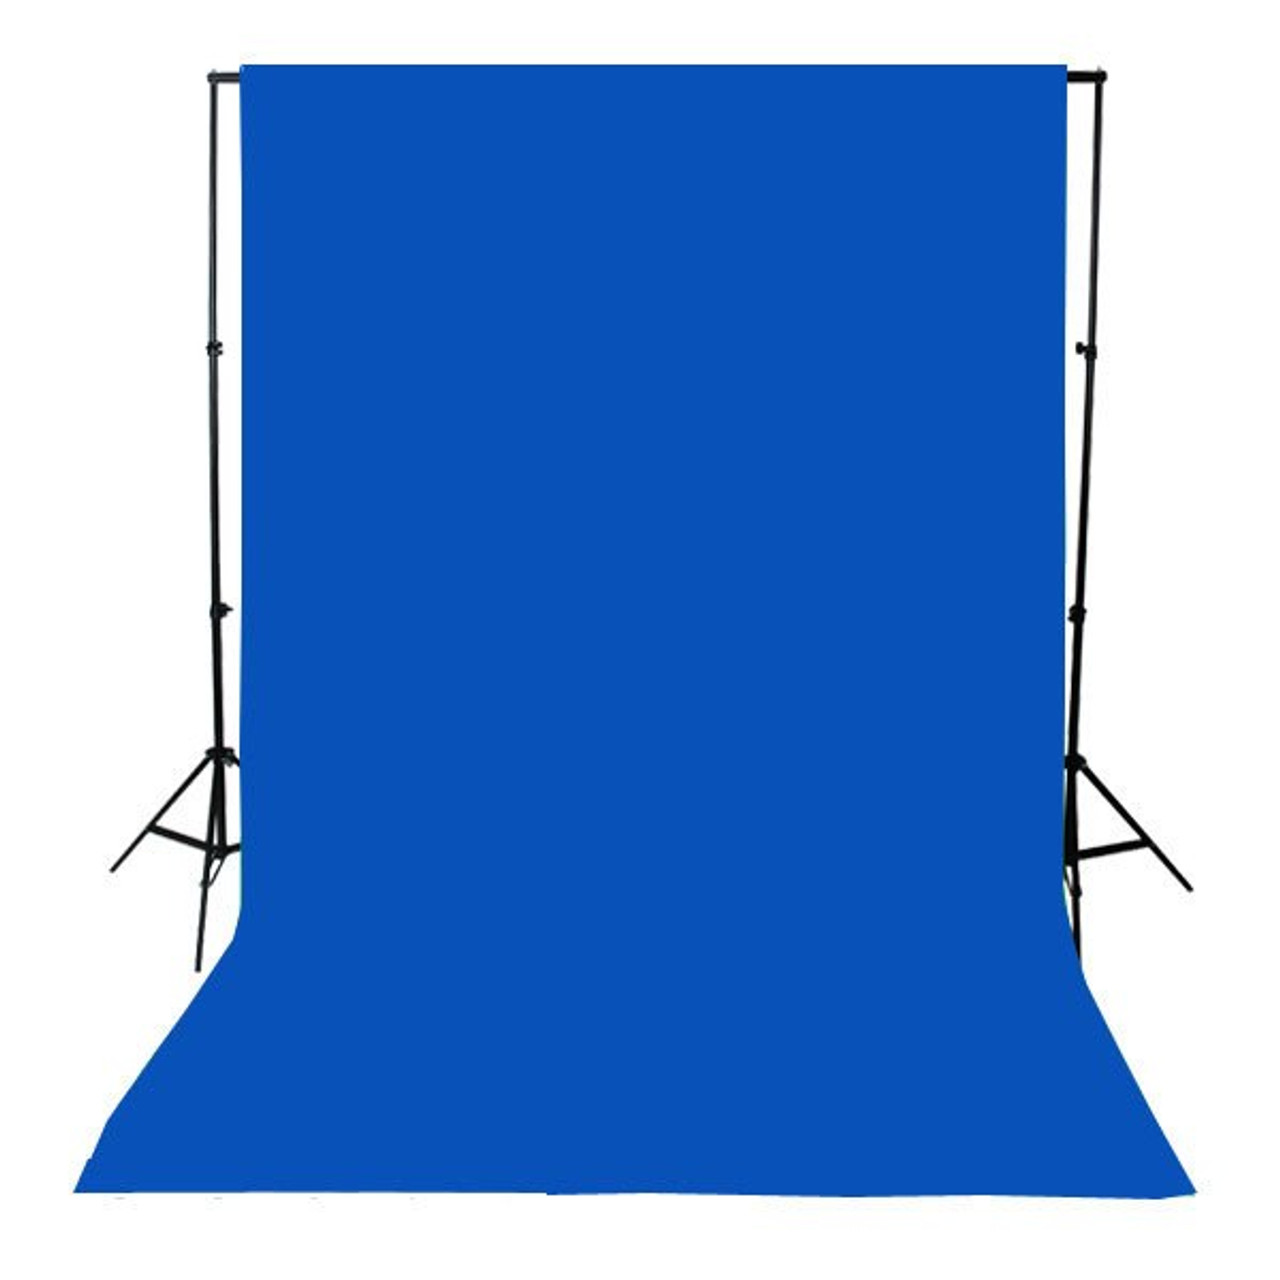 10' x 24' Chromakey Blue Muslin -1 (3.048mX7.315m)